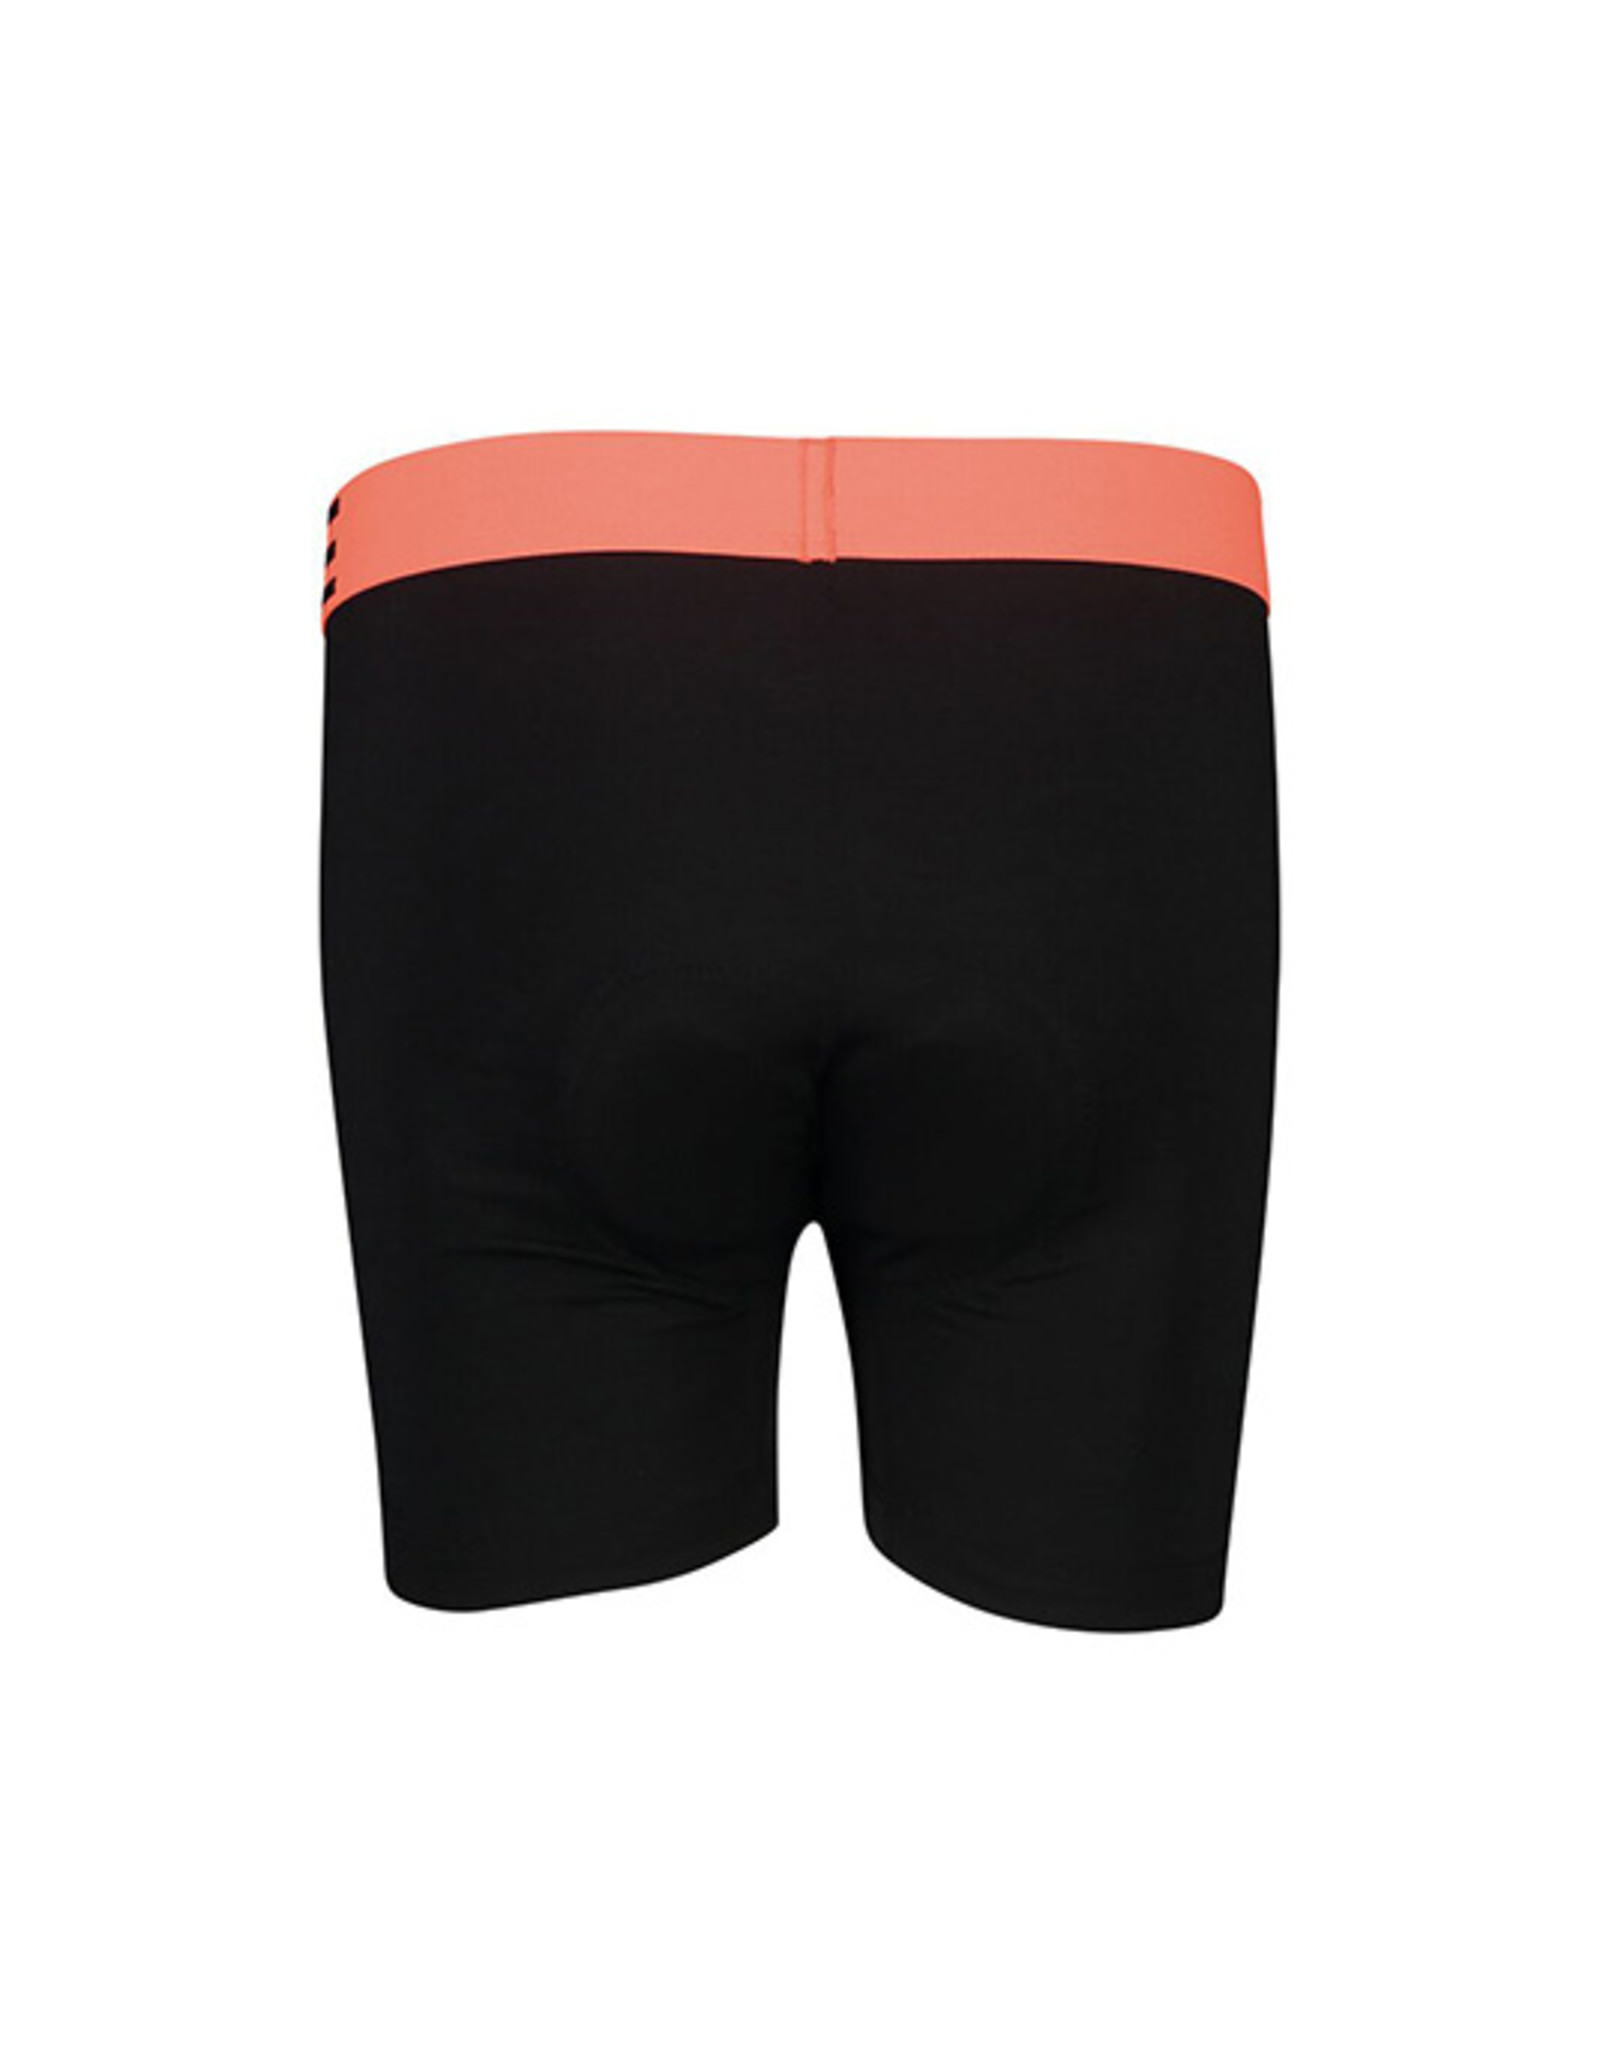 MONS ROYALE Women's Royale Chamois Short: Black